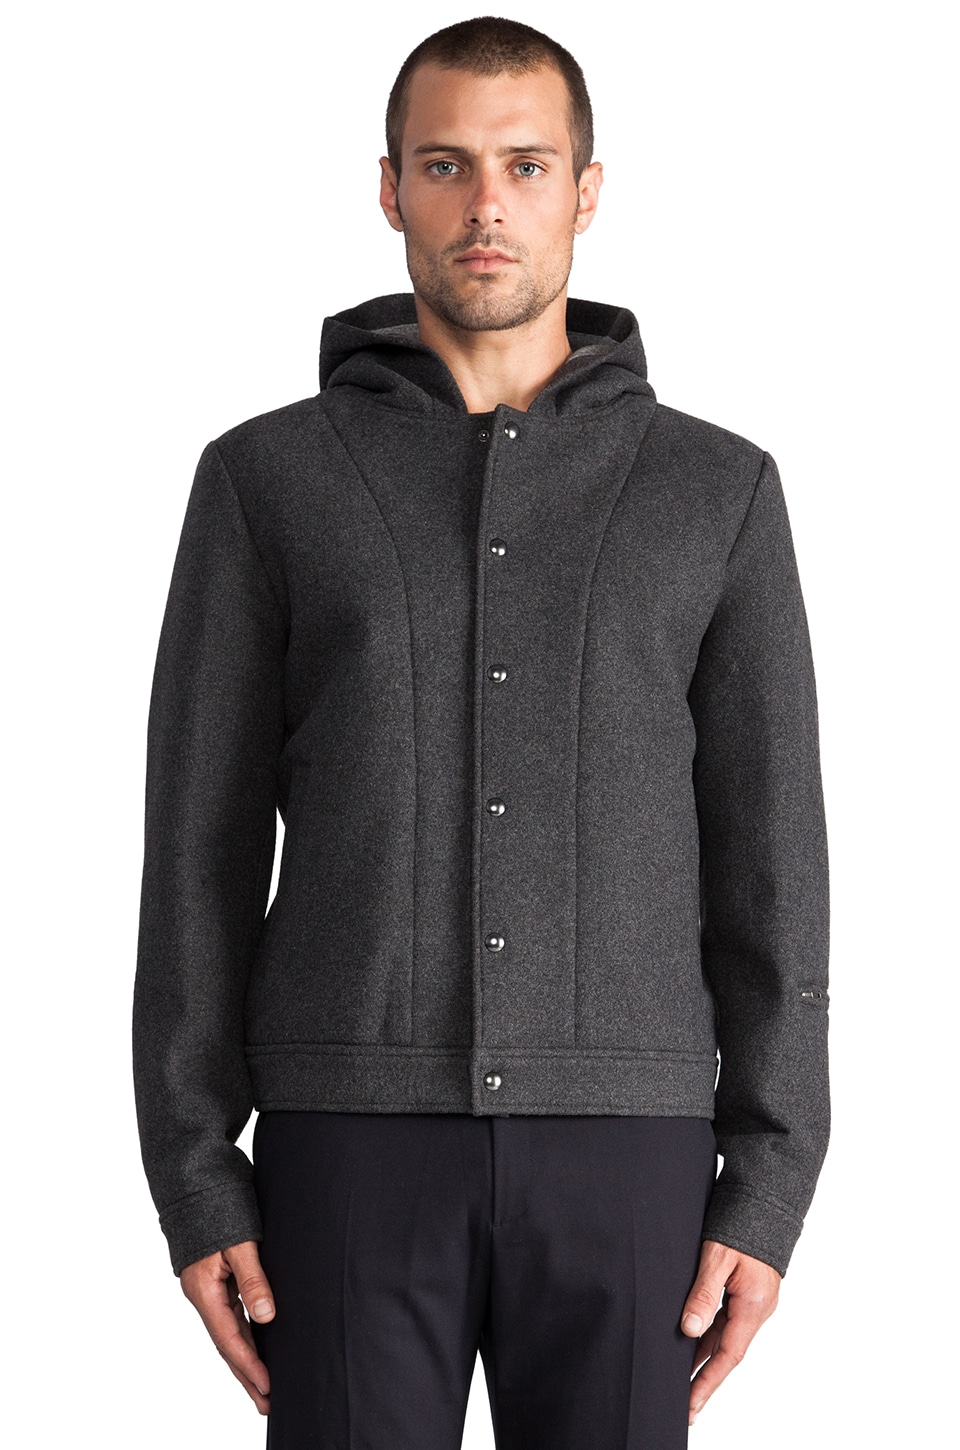 T by Alexander Wang Wool Bonded Neoprene Jacket in Charcoal